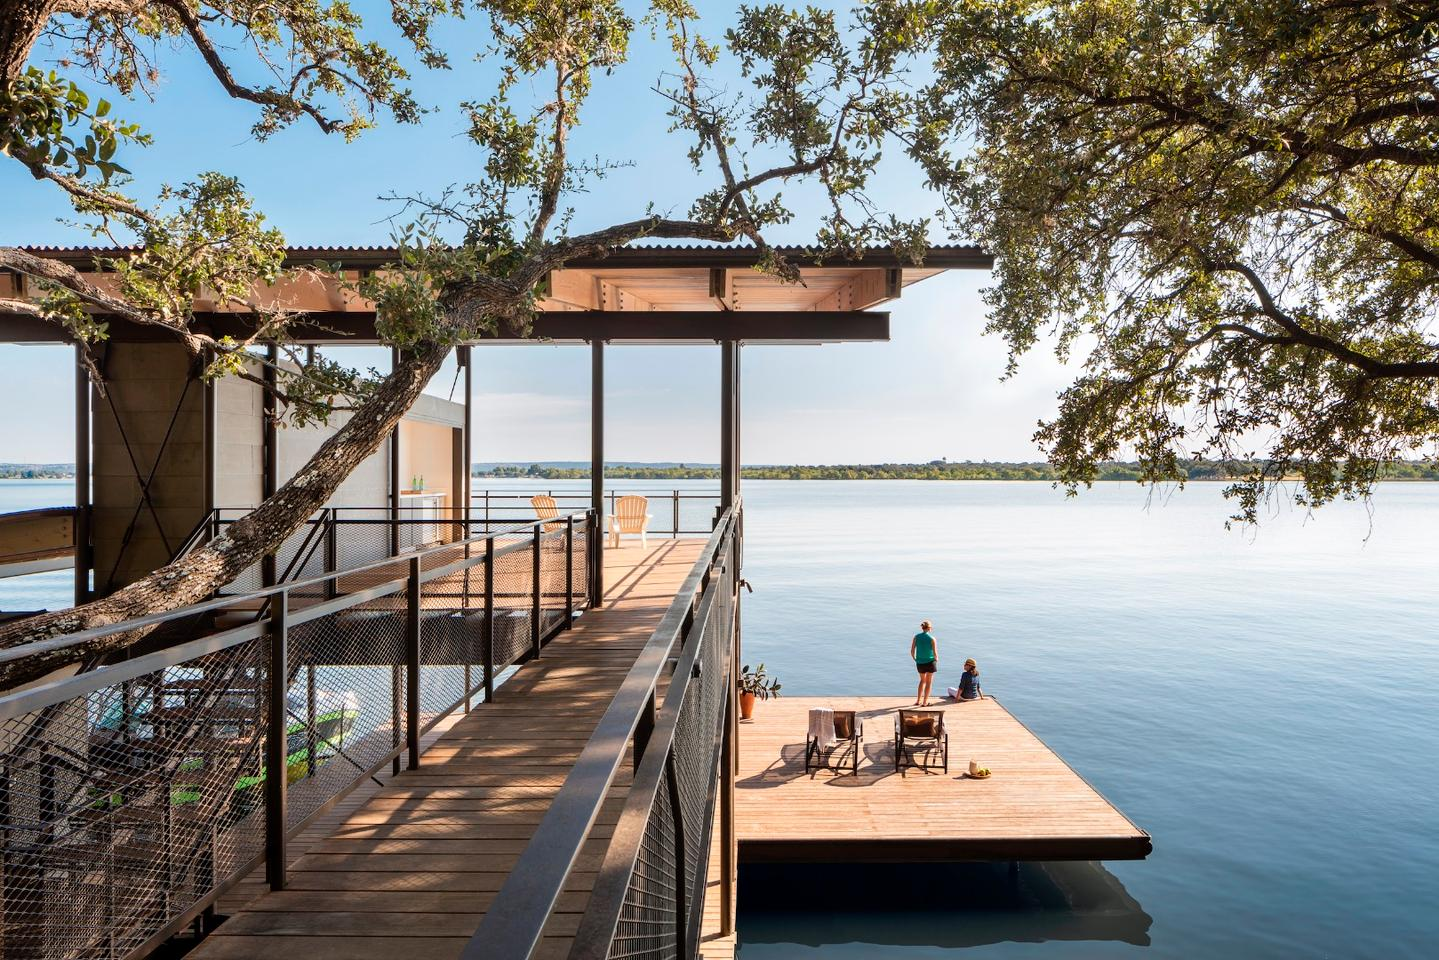 This beautiful modern take on the lake house in Marble Falls, Texas, was designed by Lake|Flato Architects. It's called Blue Lake Retreat